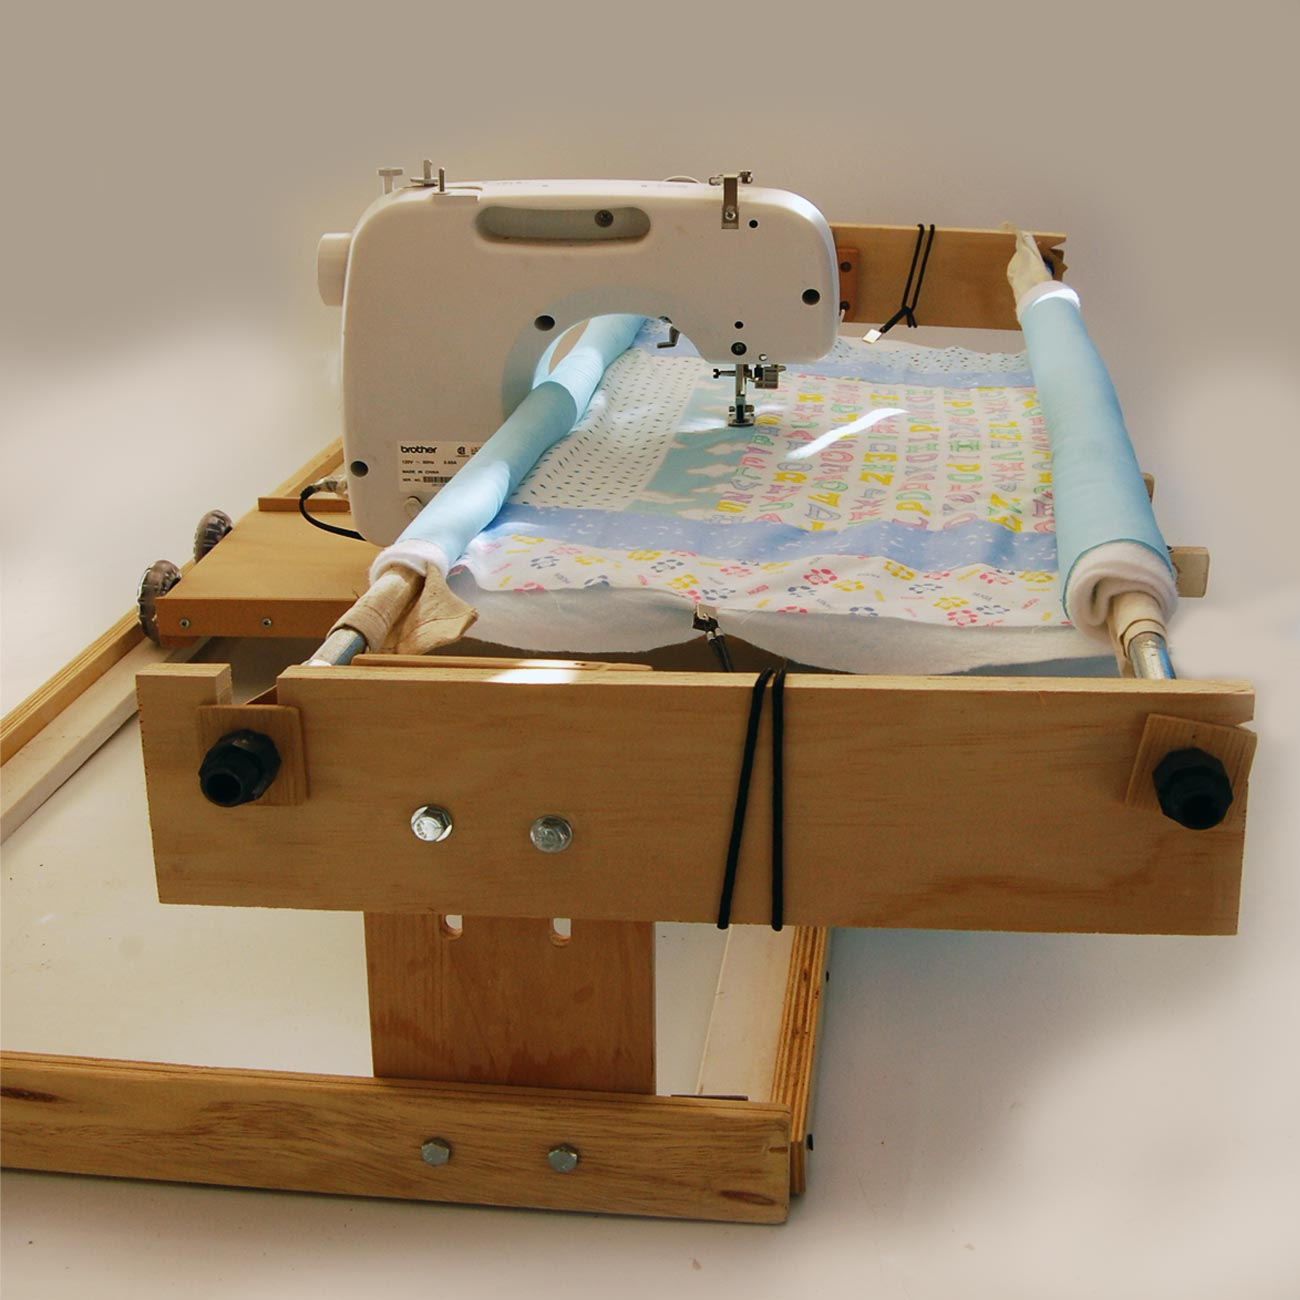 Machine quilt frames: Kit # 6 Track & Carriage Purchase